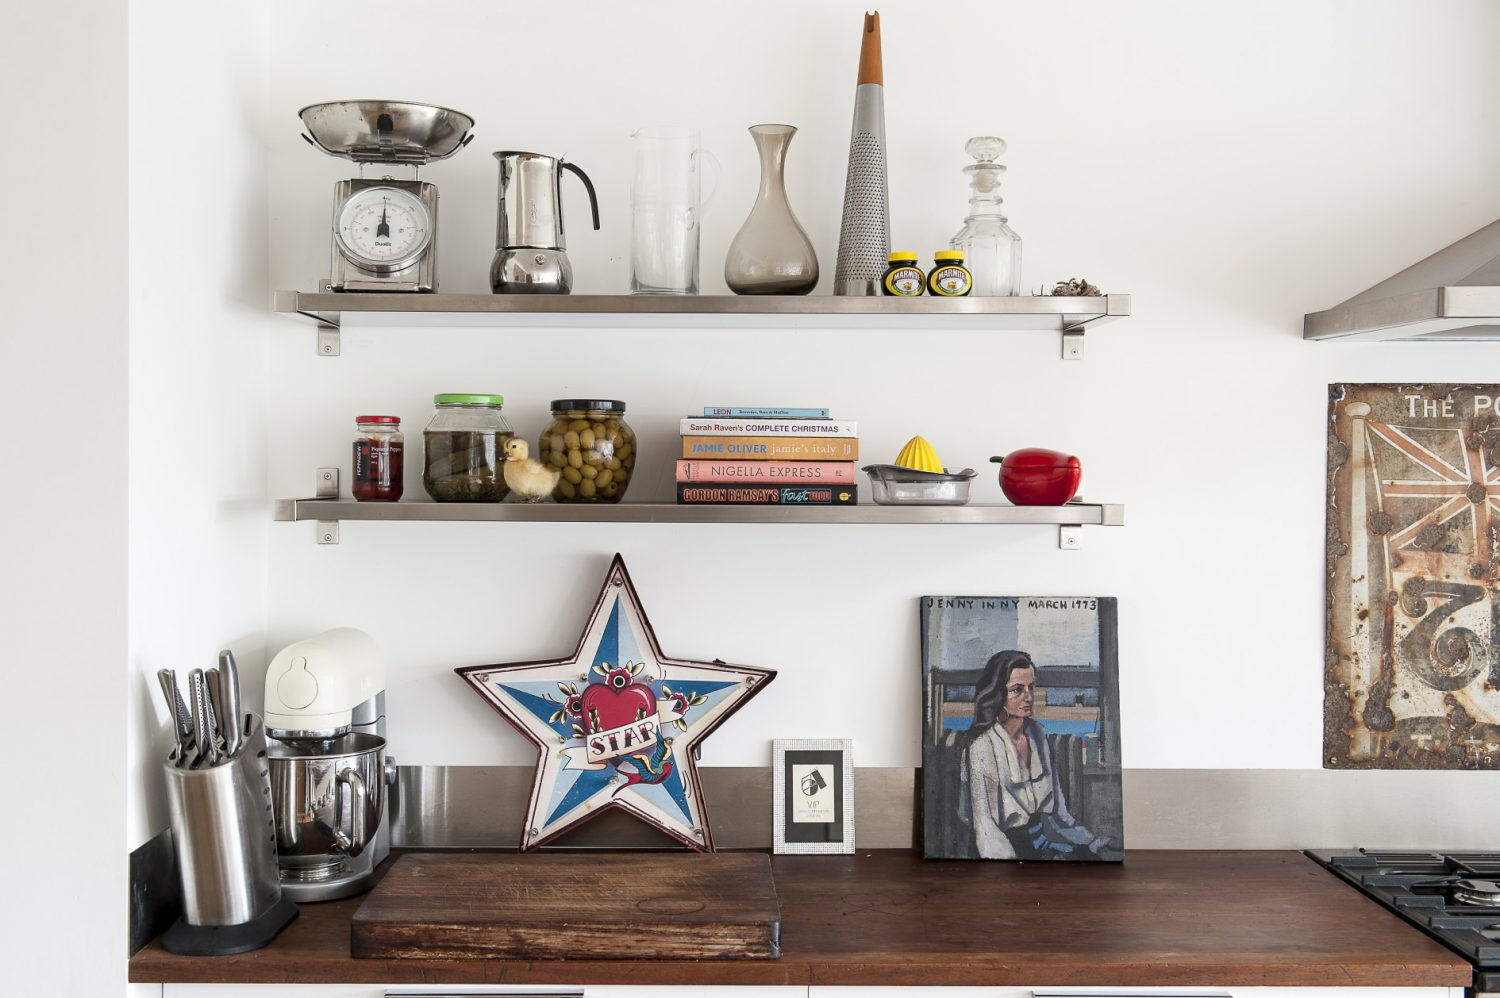 Open shelving is practical – as well as displaying the couple's collection of kitchenware, cookbooks and artwork